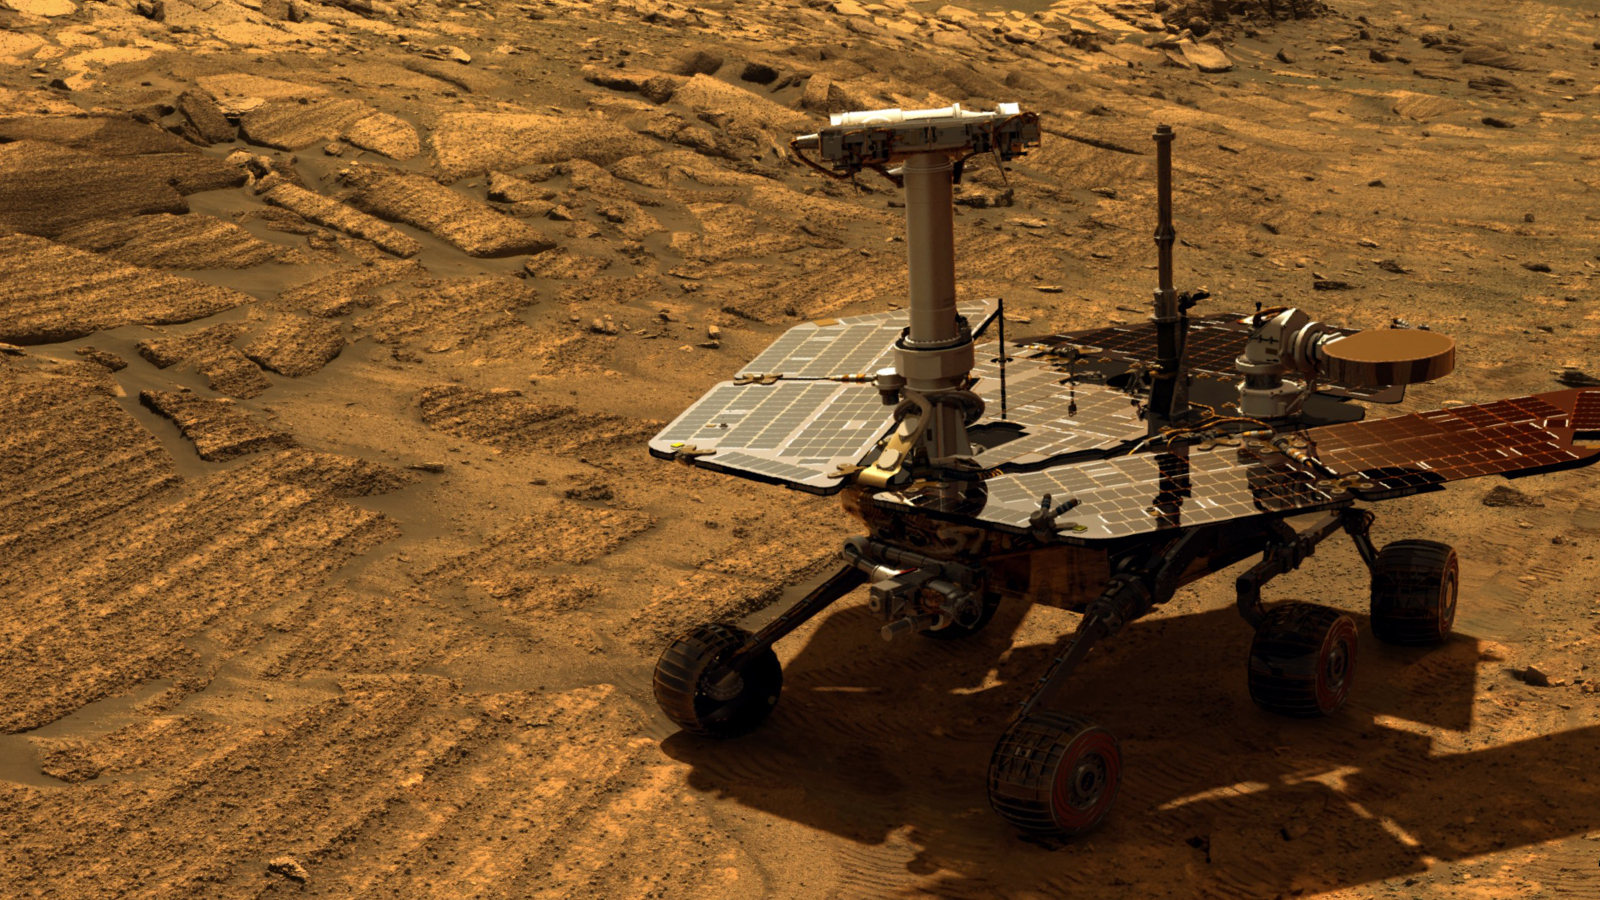 nasa mars exploration rover mission - photo #2